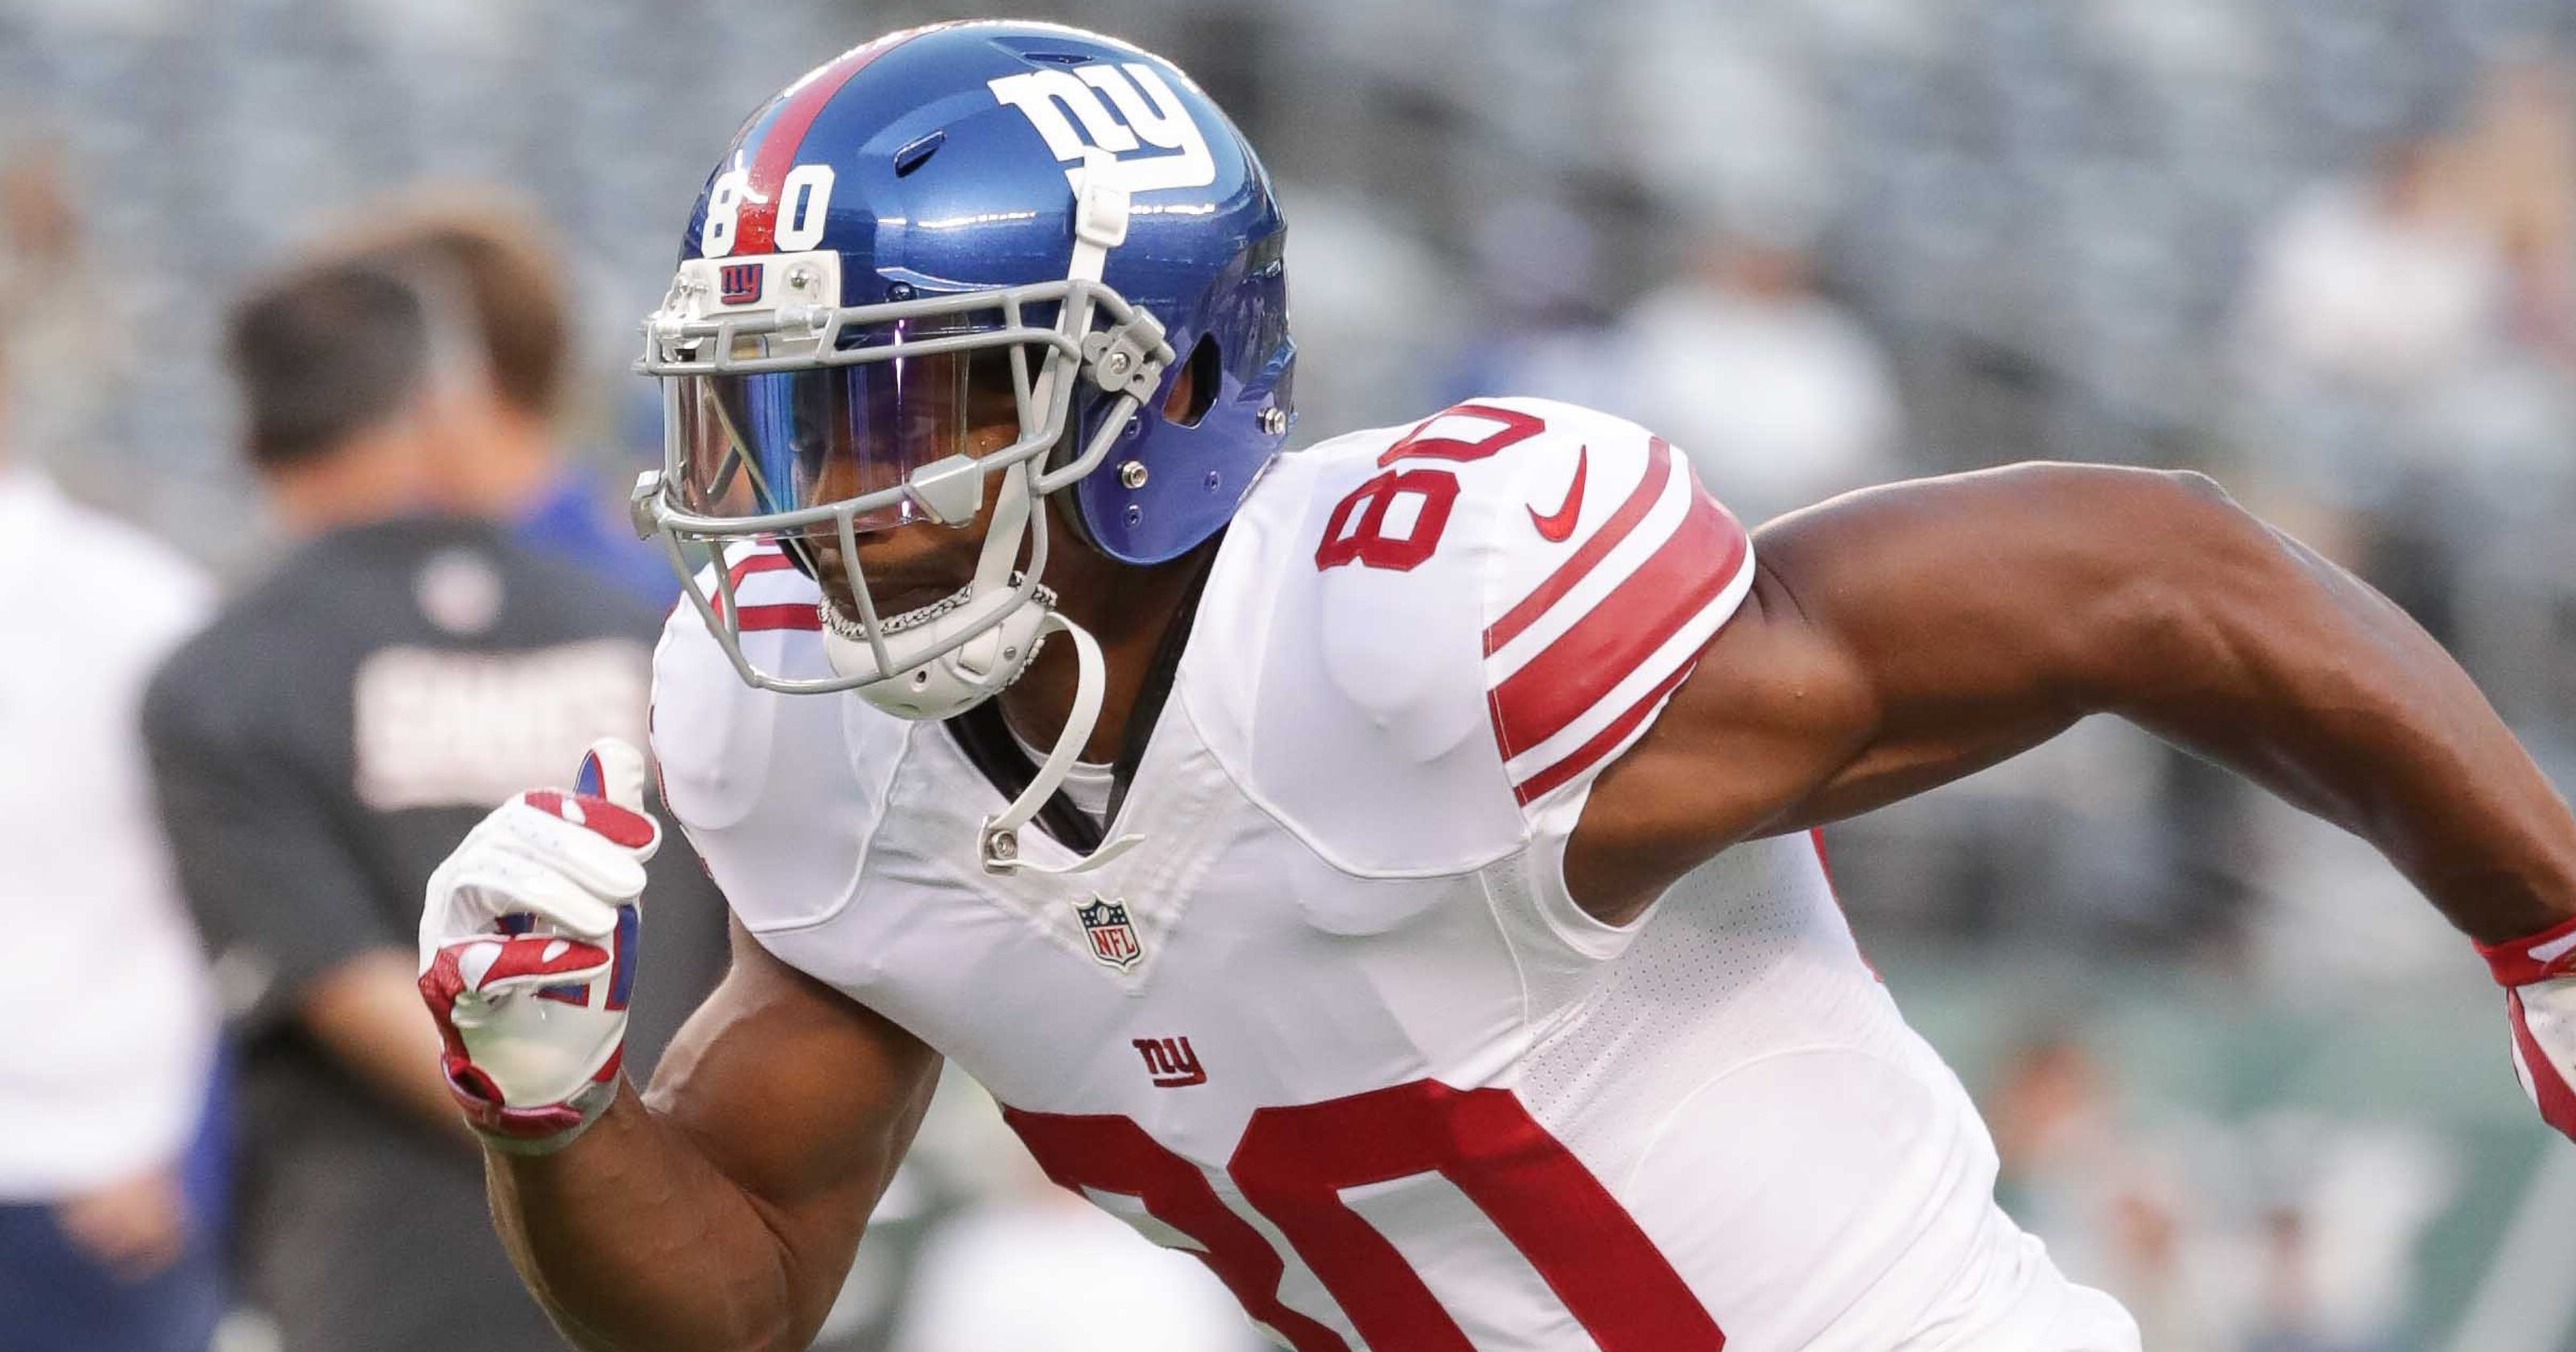 0e5dce1348c Giants' Victor Cruz returns to field after nearly two years, makes one catch